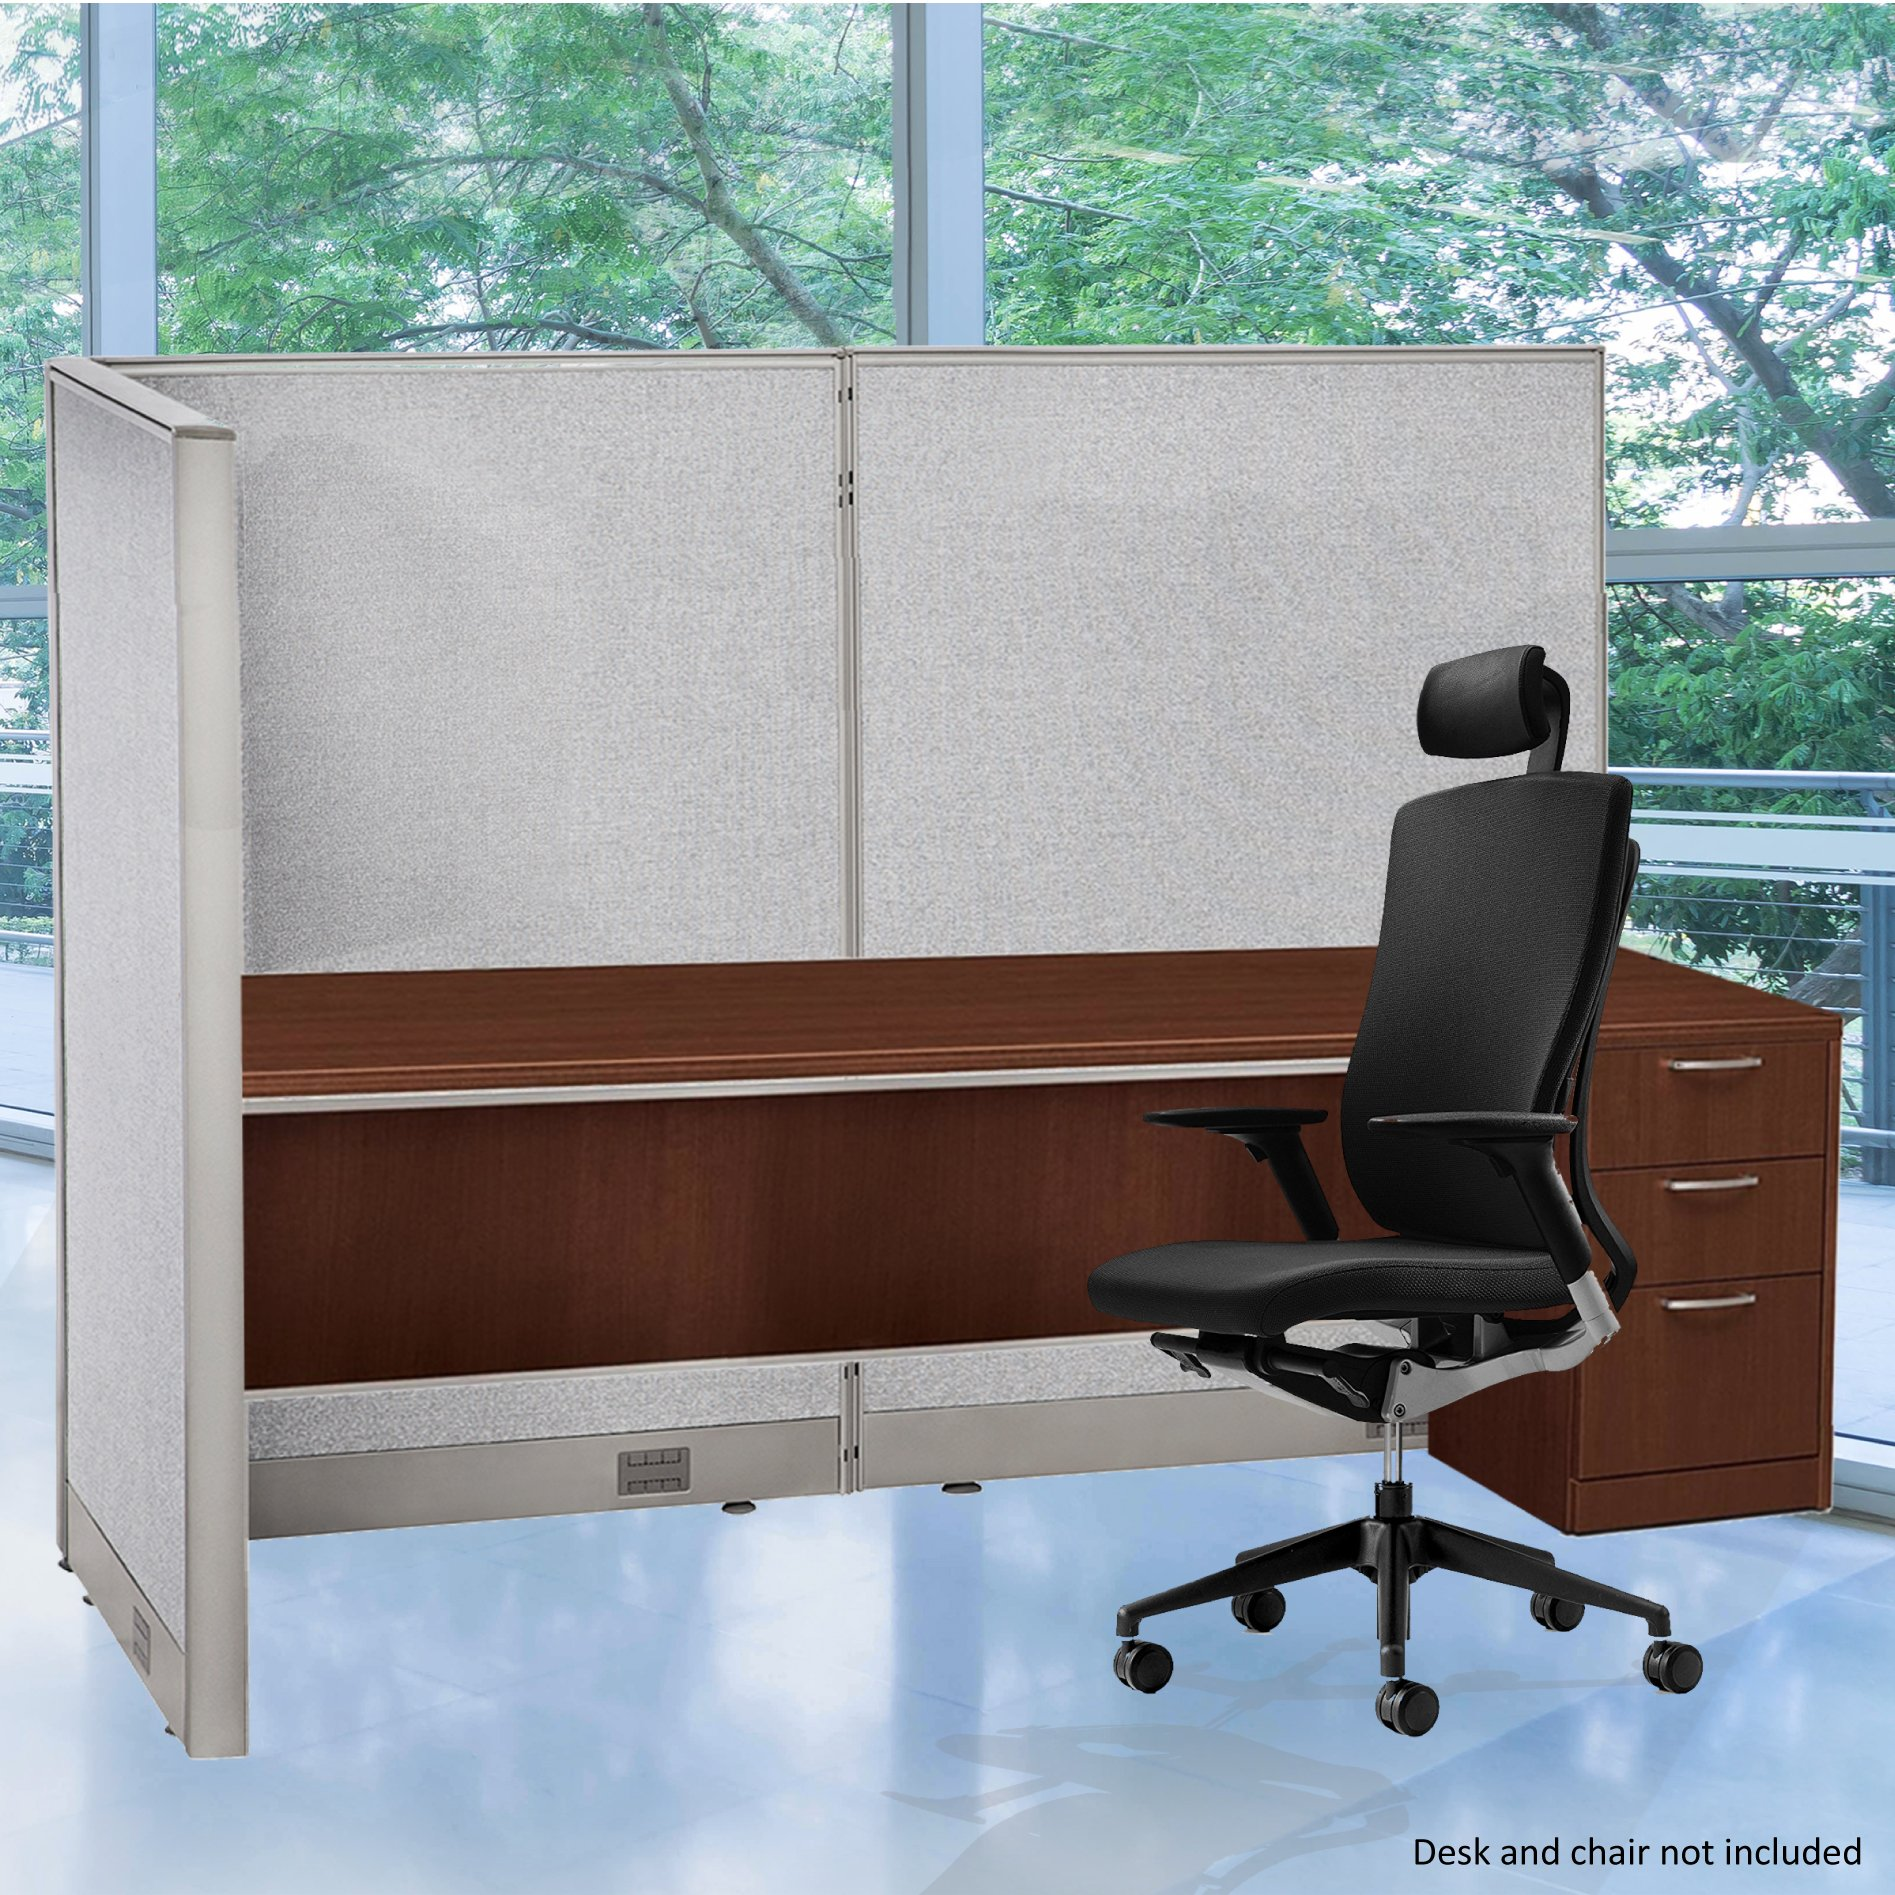 GOF 36D x 72W x 60H L-Shaped Freestanding Partition 36D x 72W x 60H / Office, Room Divider 3' x 6' (36D x 72W x 60H)